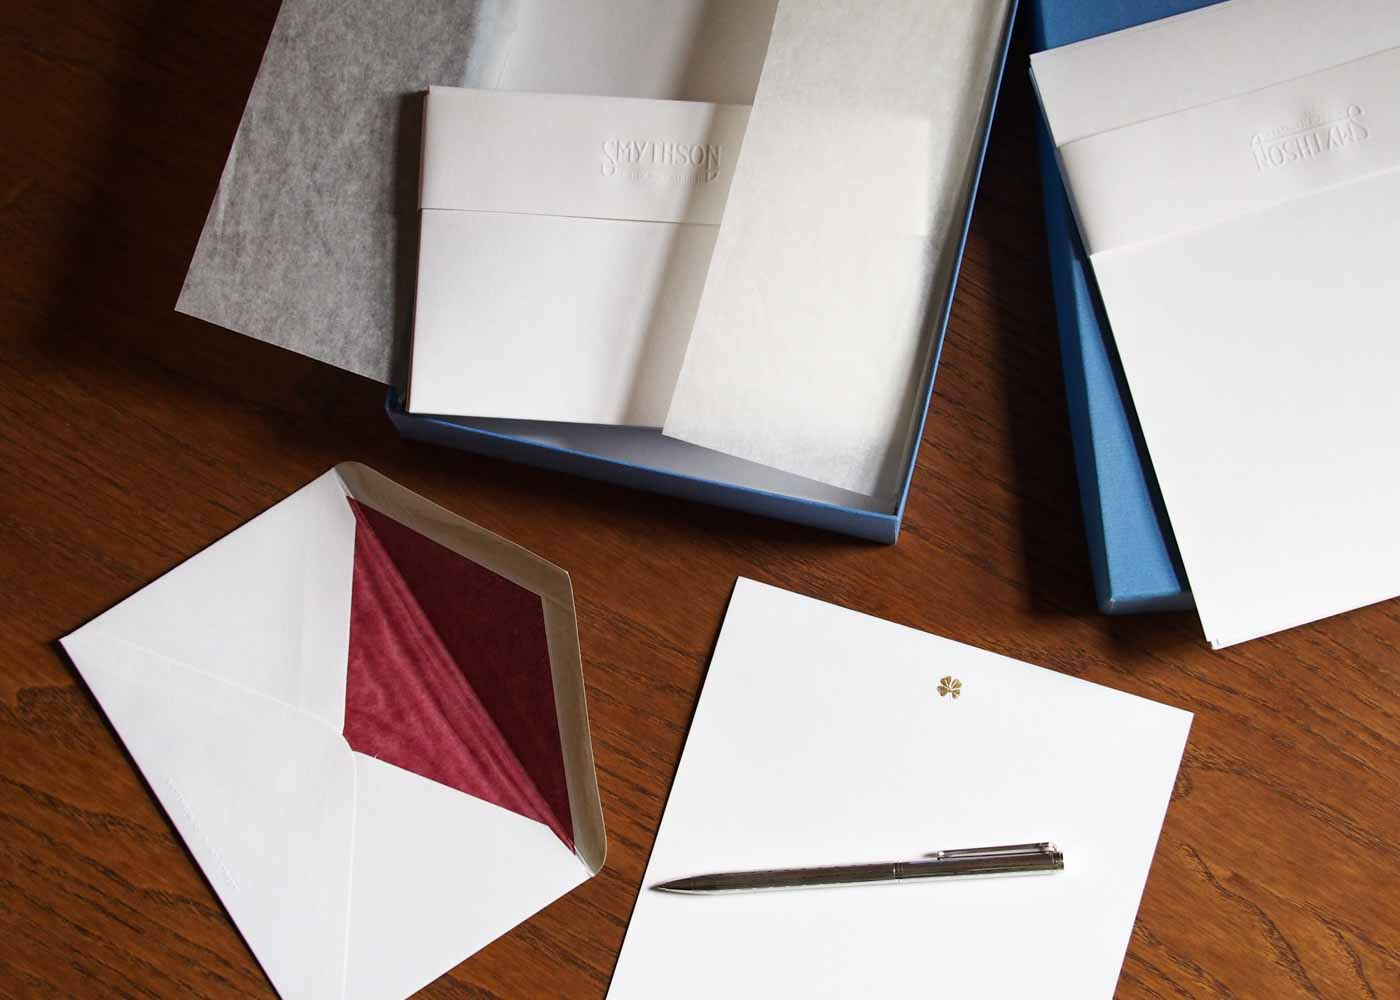 High quality stationery can be a great gift for a regular letter writer.